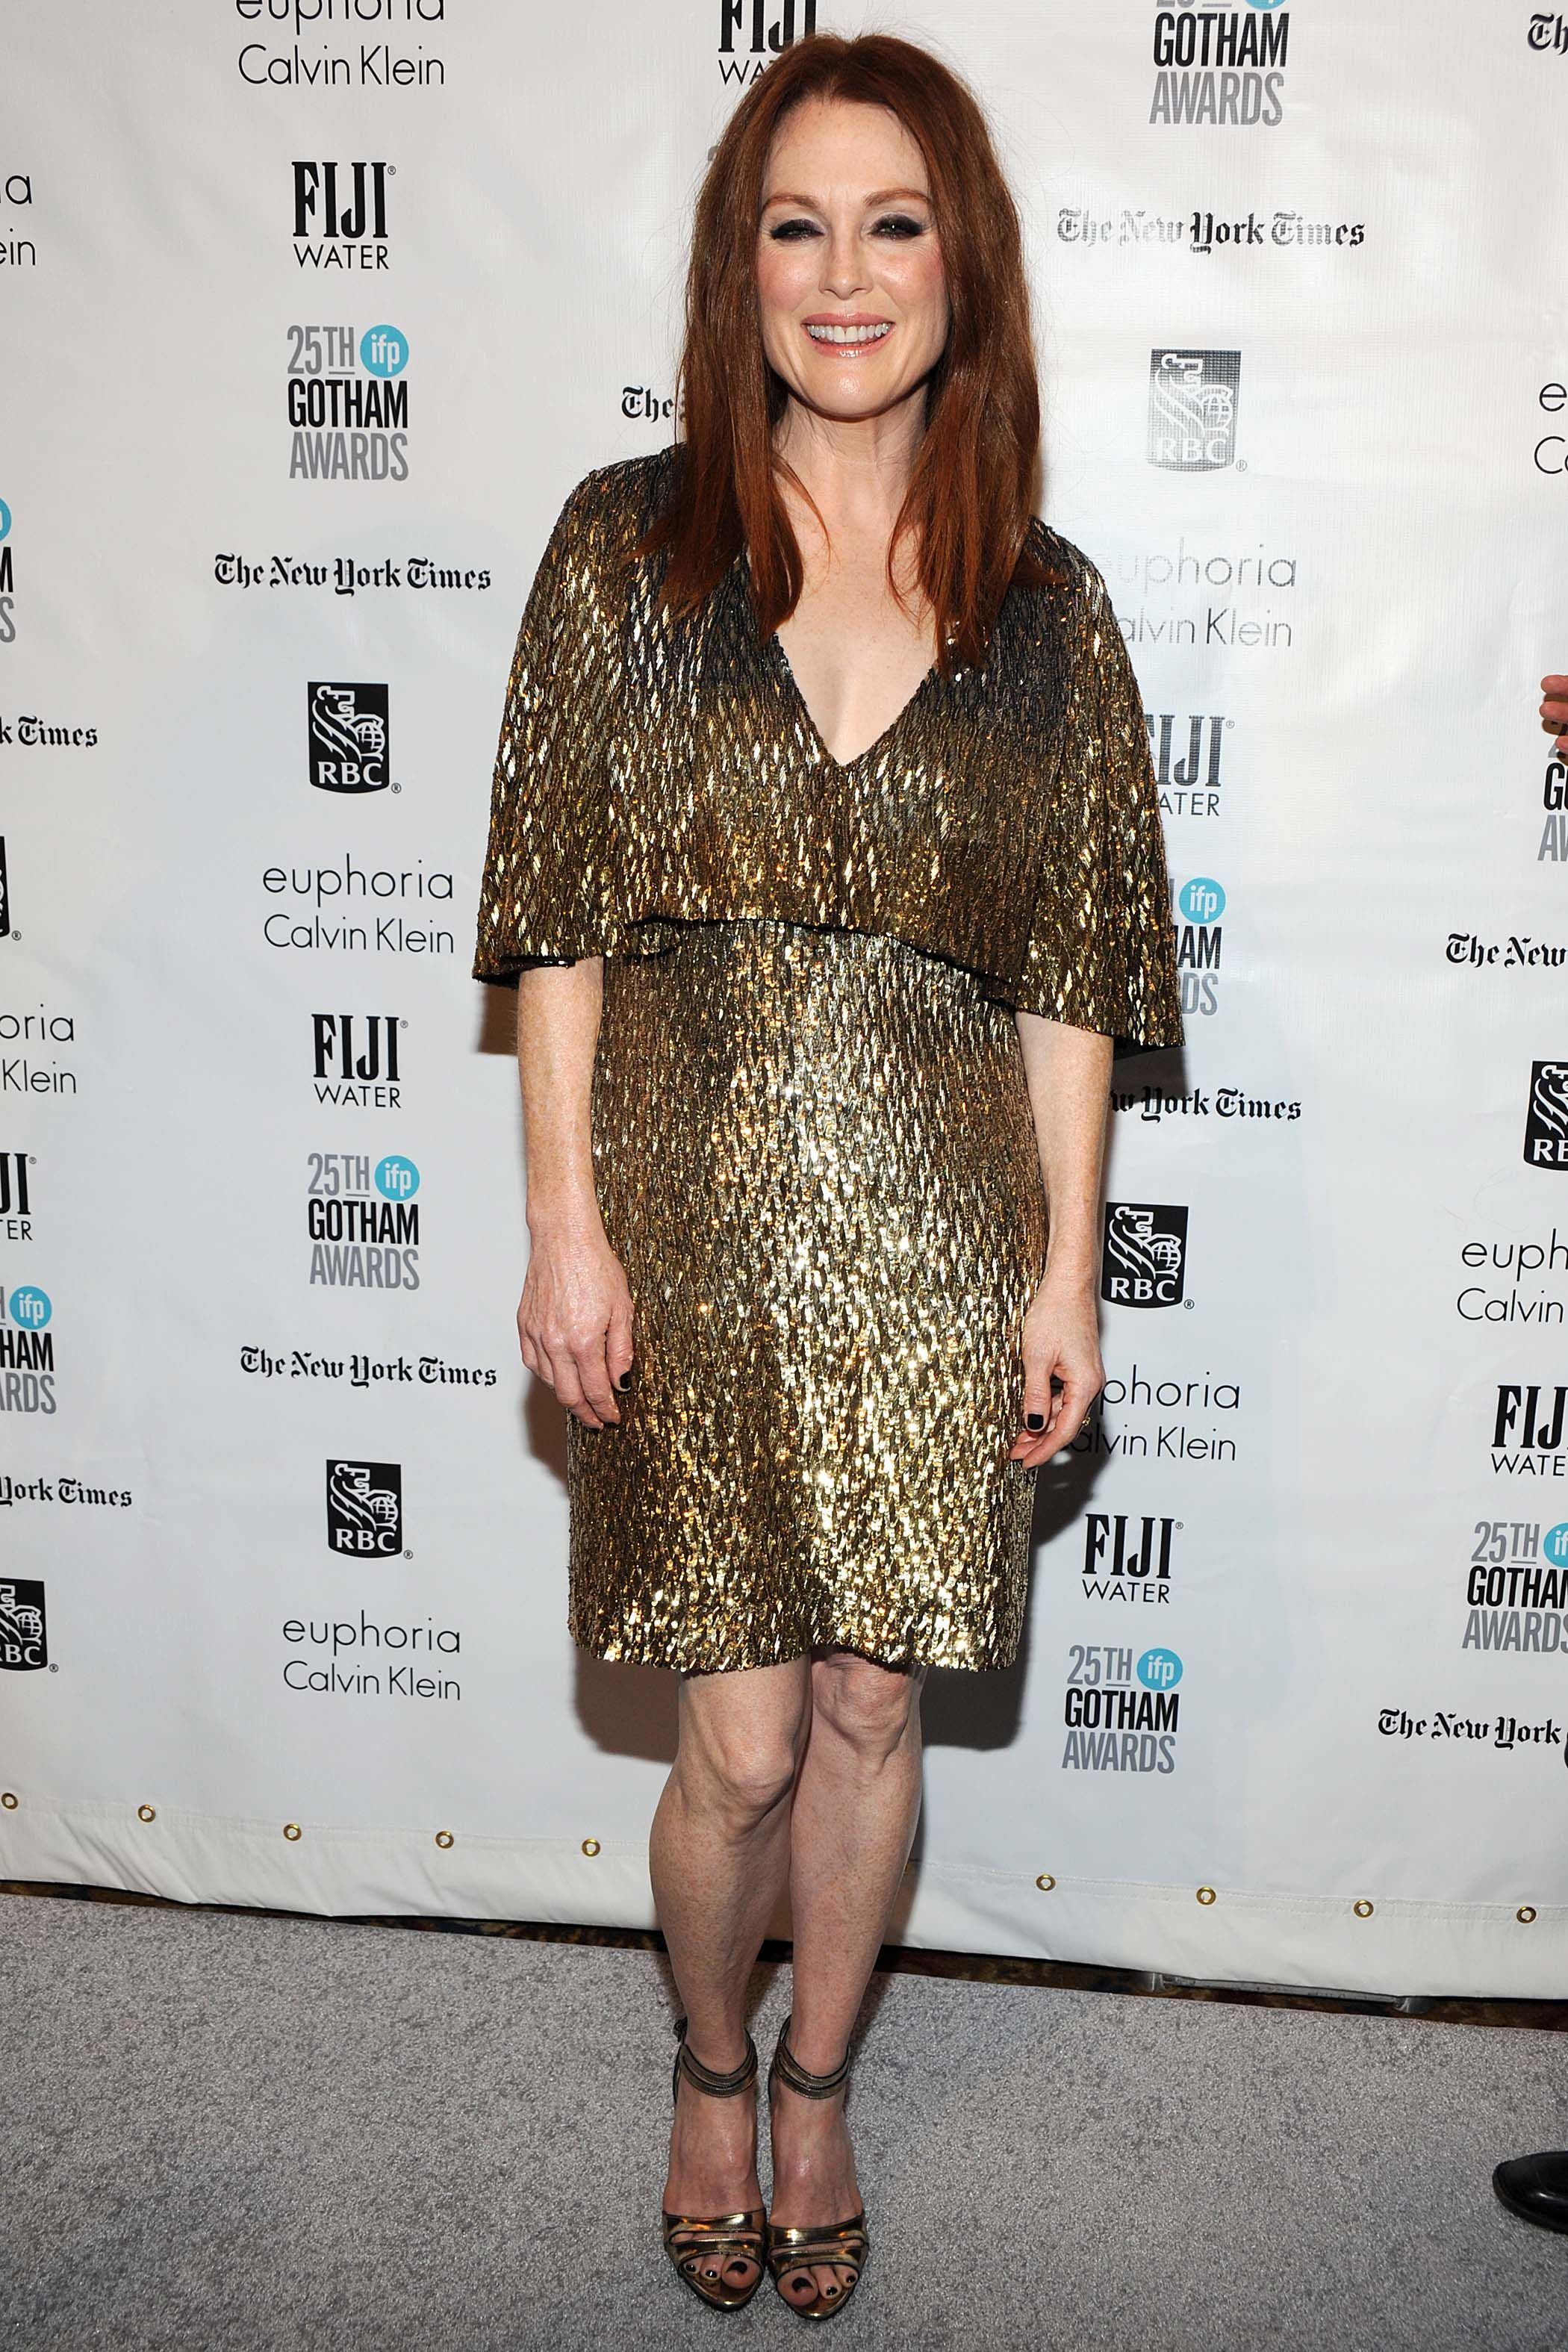 Julianne Moore attends the 25th Annual Gotham Independent Film Awards at Cipriani Wall Street on November 30, 2015 in New York City.